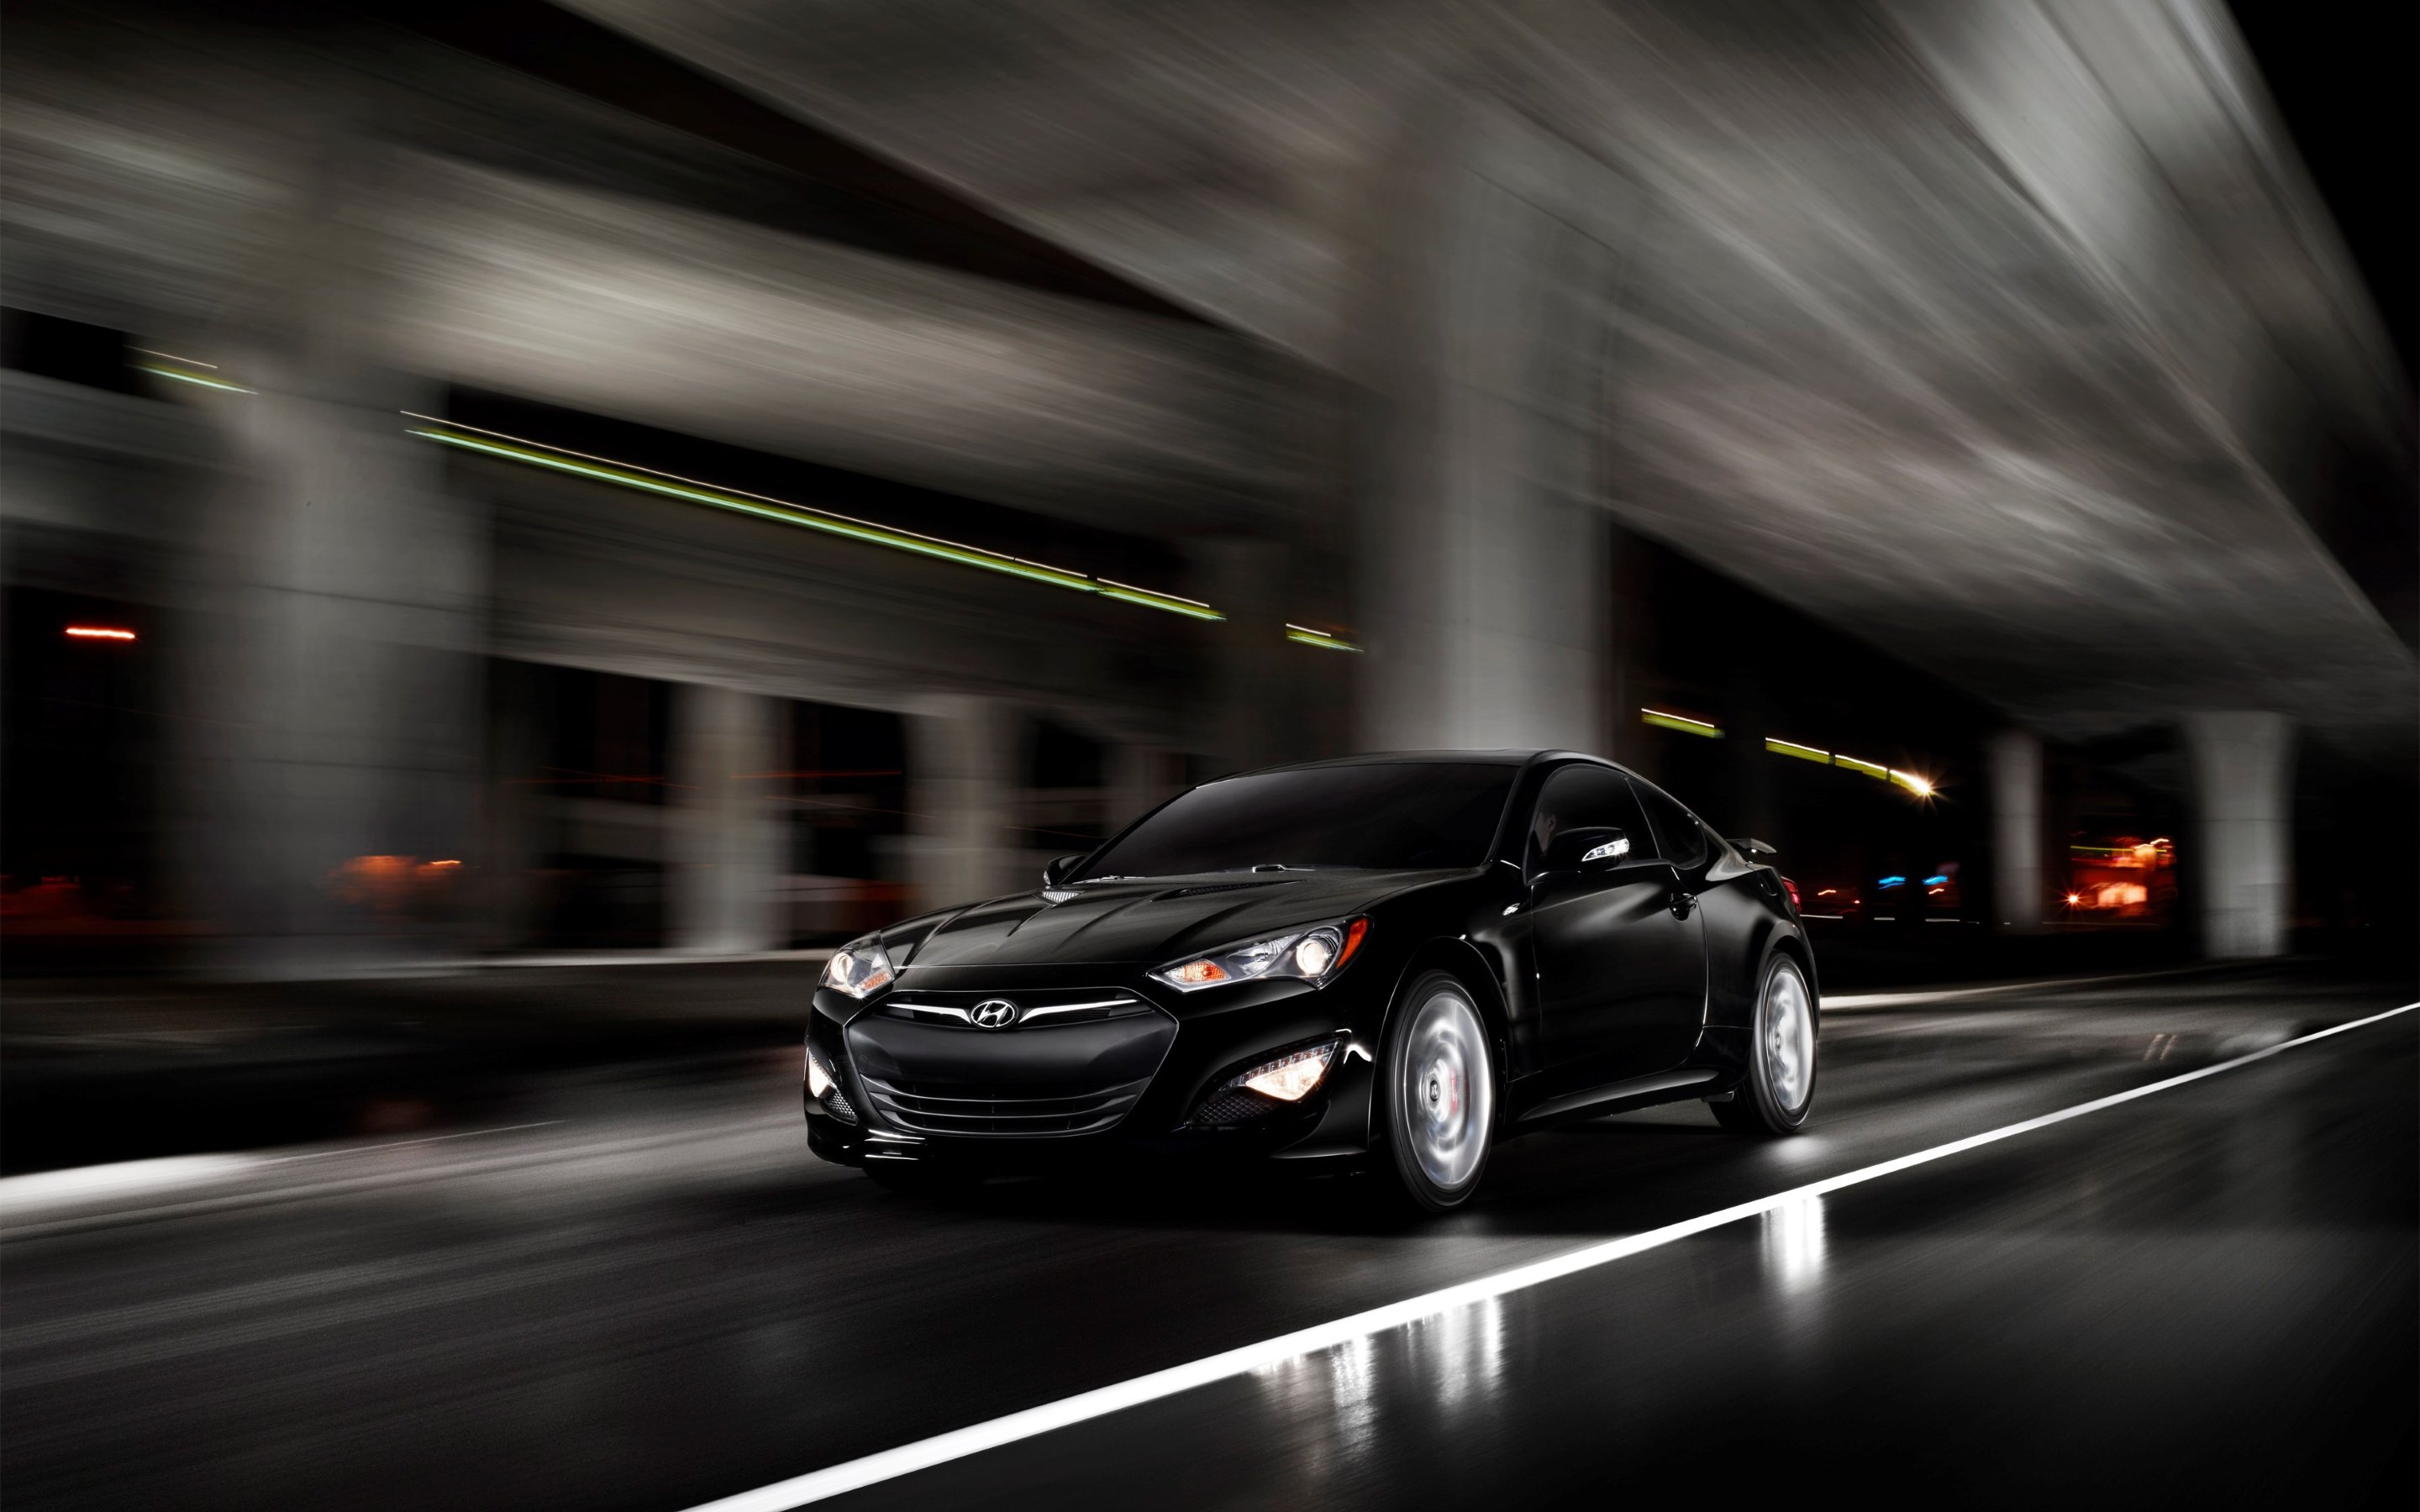 Hyundai Genesis Coupe Hd Wallpaper Background Image 2880x1800